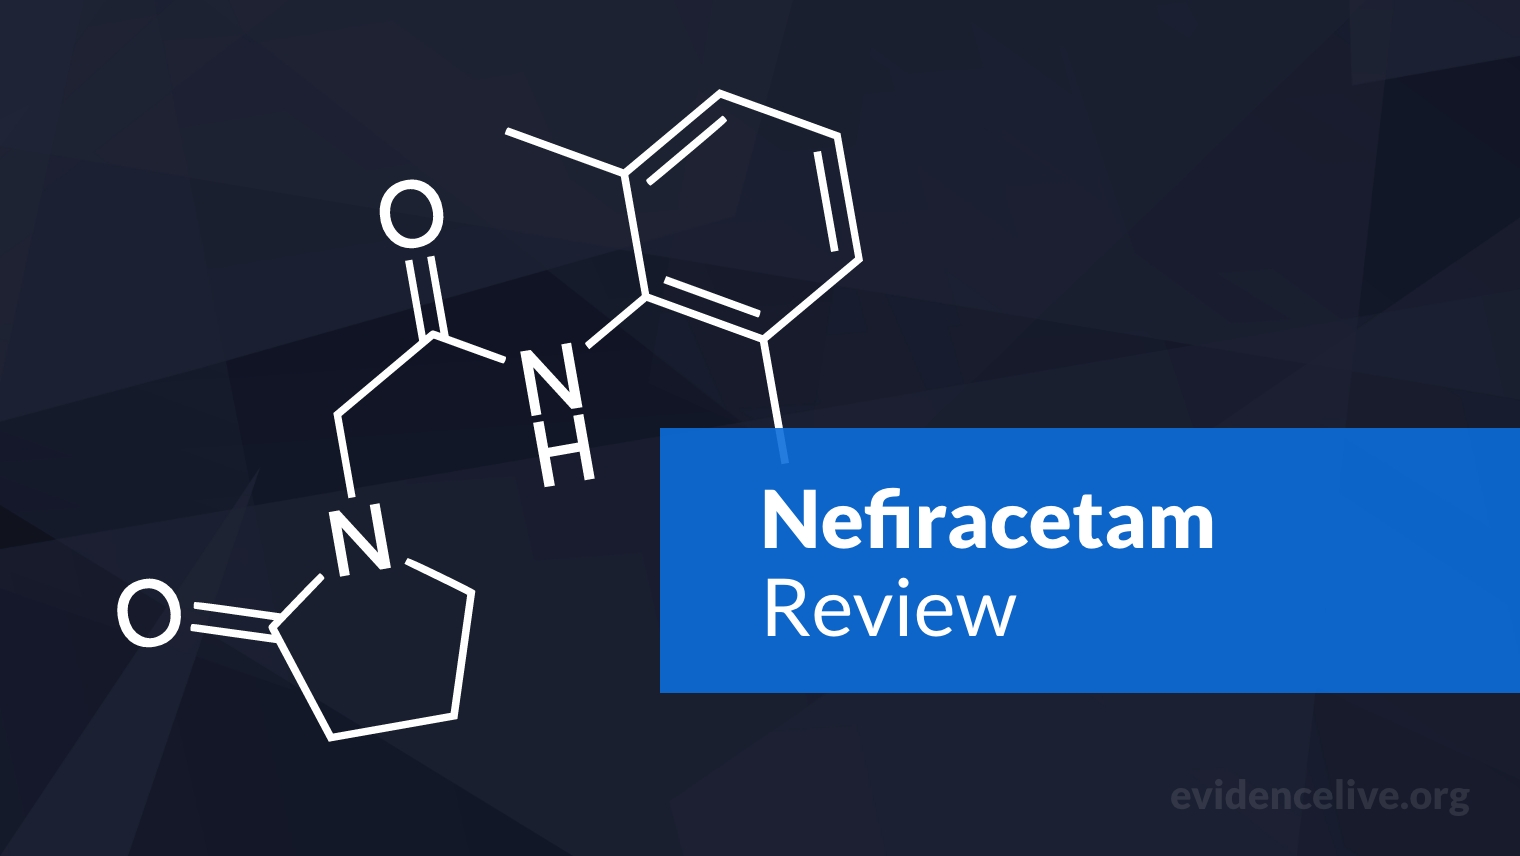 Nefiracetam: Benefits, Uses, Dosage, and Side Effects